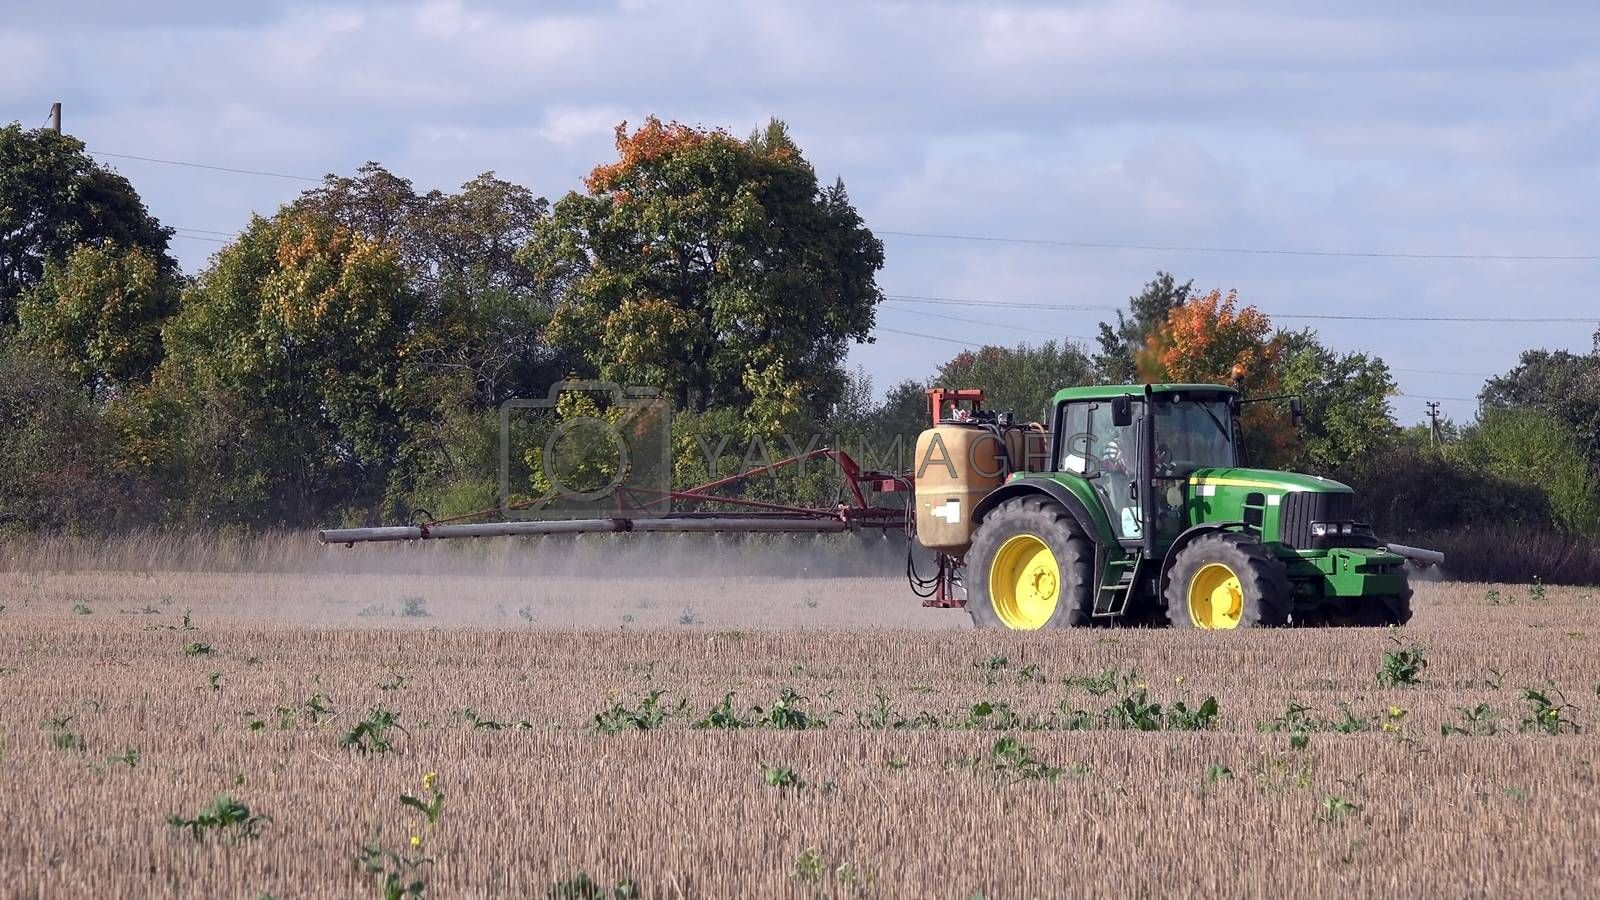 Tractor spraying stubble field with herbicide chemicals in autumn. Farmer with modern vehicle kill weeds in agriculture field before winter.